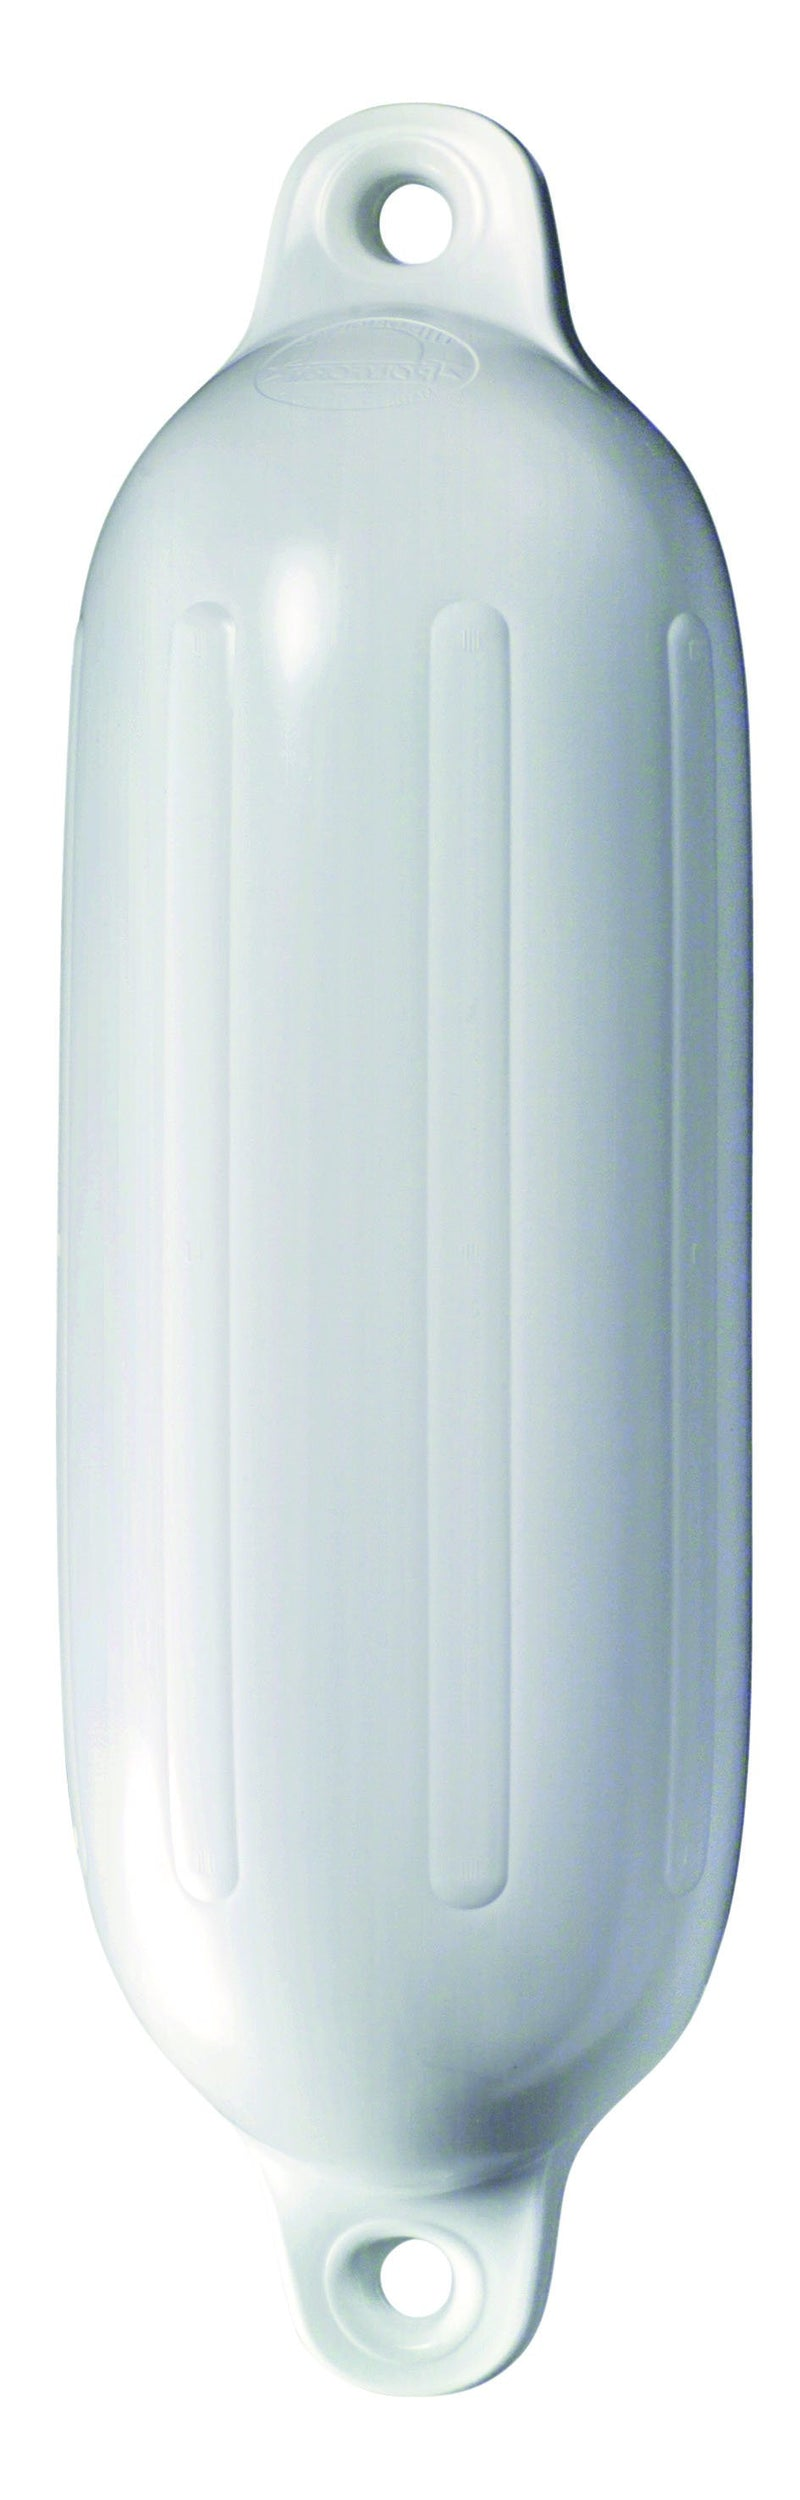 G3 Polyform Fender 515mm(L) x 145mm(D)